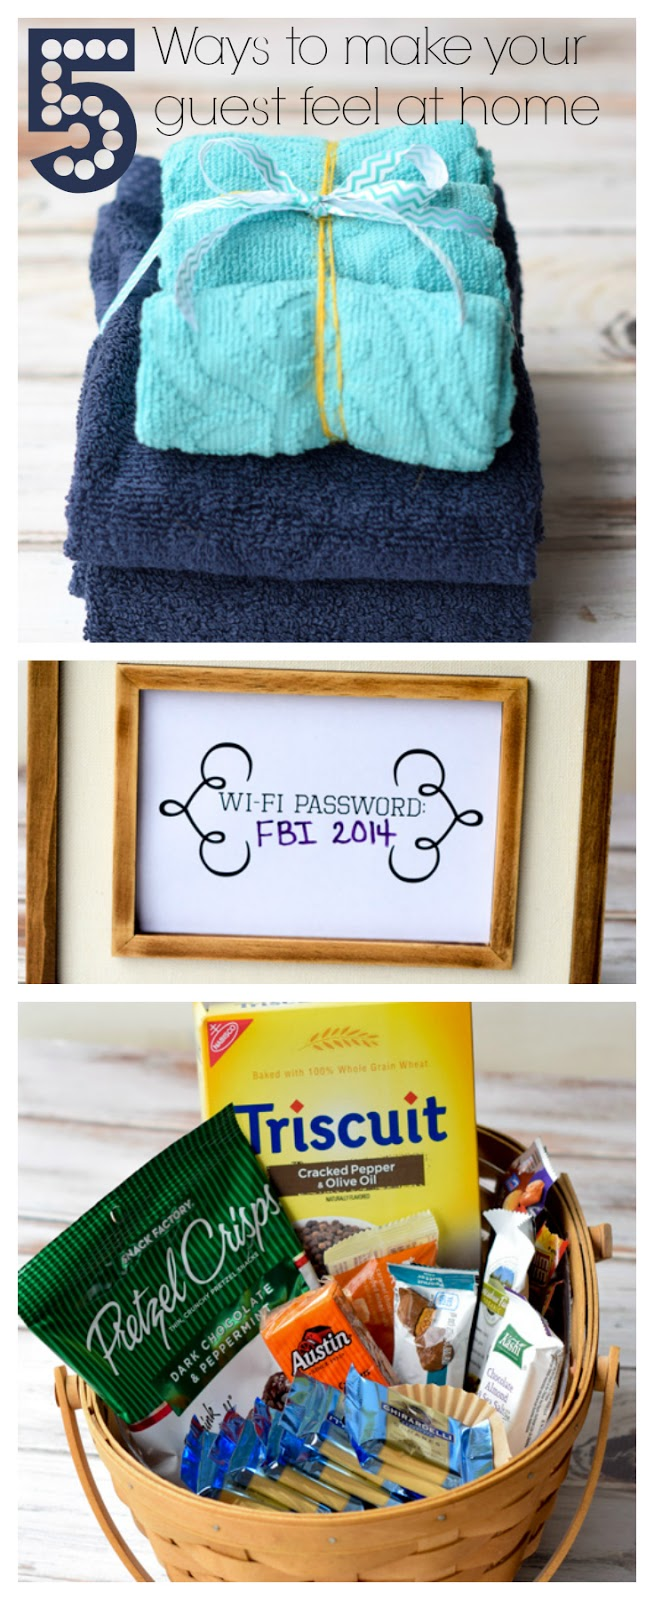 A list of 5 tips to make an overnight guest feel at home. Includes fresh towels and toiletries, snacks, coffee and more! Learn about getting your house ready for guests (or the holidays!) with a Bissell Deep Clean Upright Cleaner & Bissell Deep Cleaning Formulas with Scotchgard Protector. Includes a giveaway for a fabulous Bissell machine! #sp #ad #giveaway #cleaning #holidays